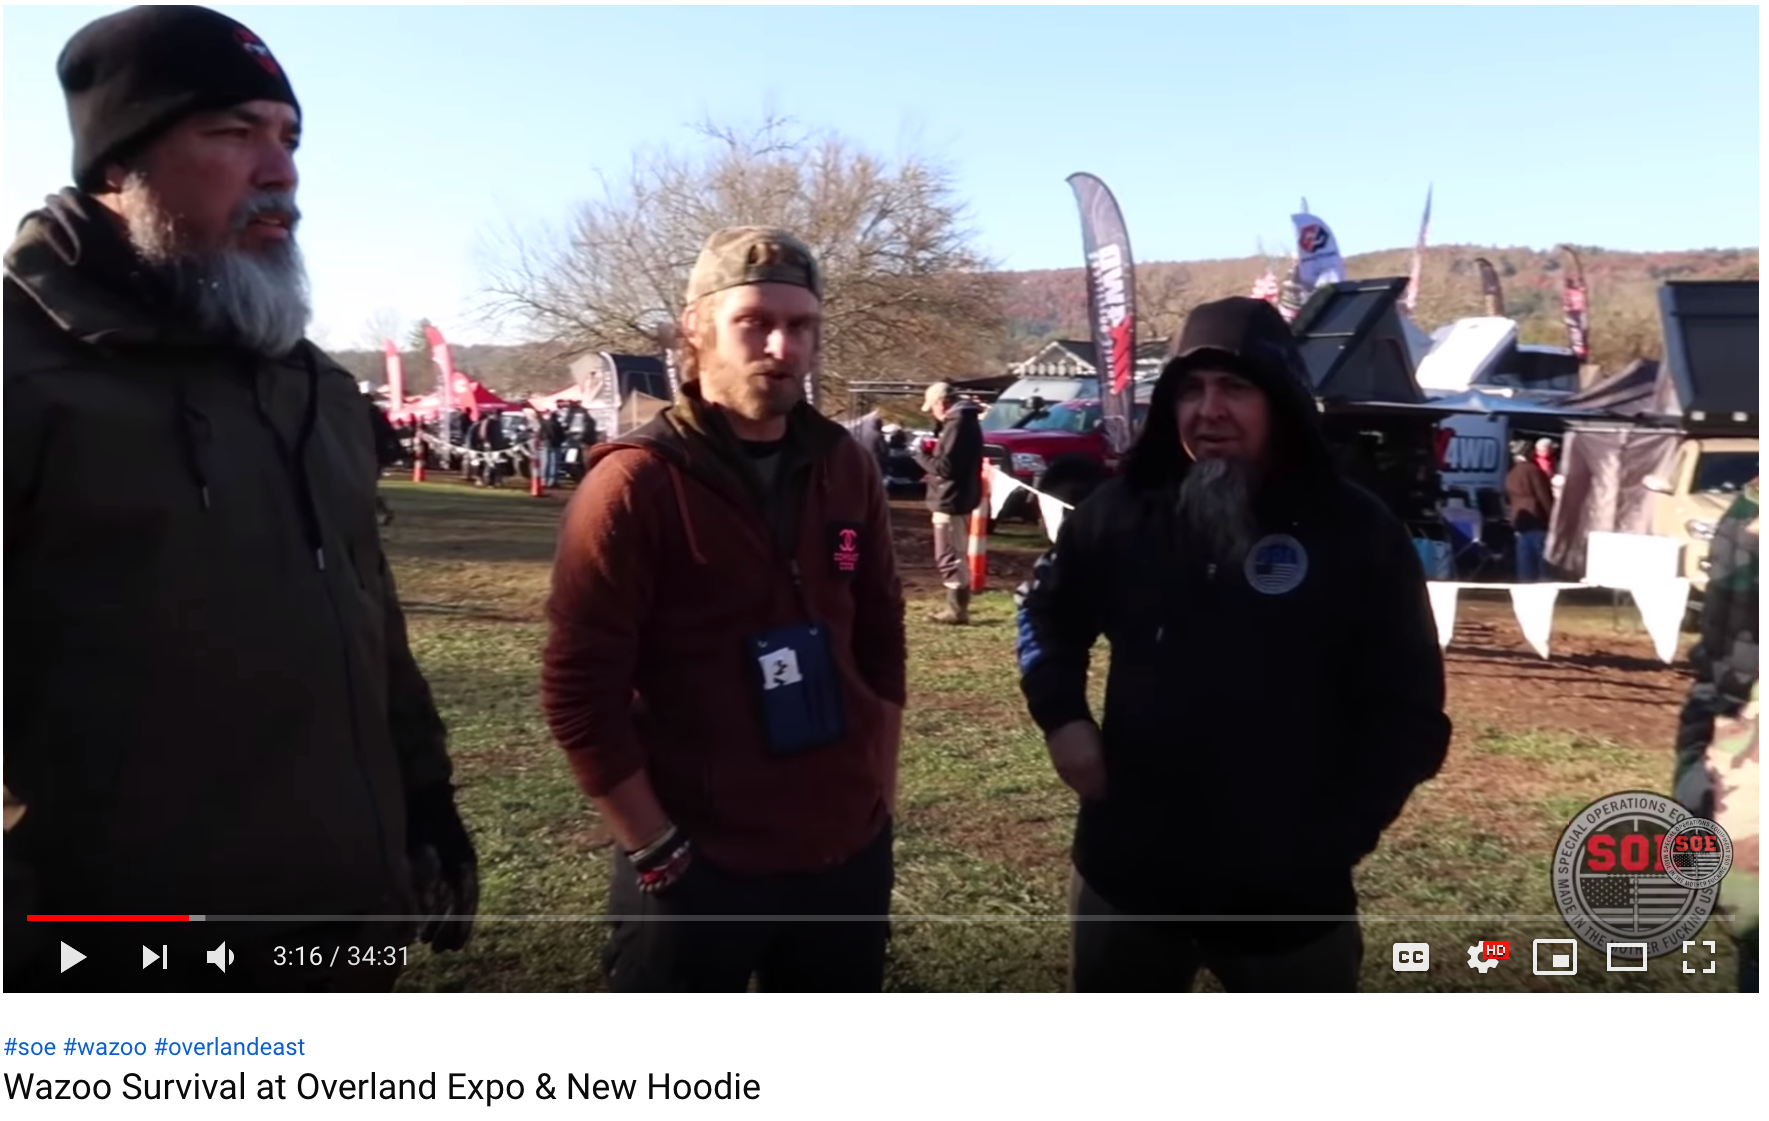 Wazoo Survival at Overland Expo & New Hoodie